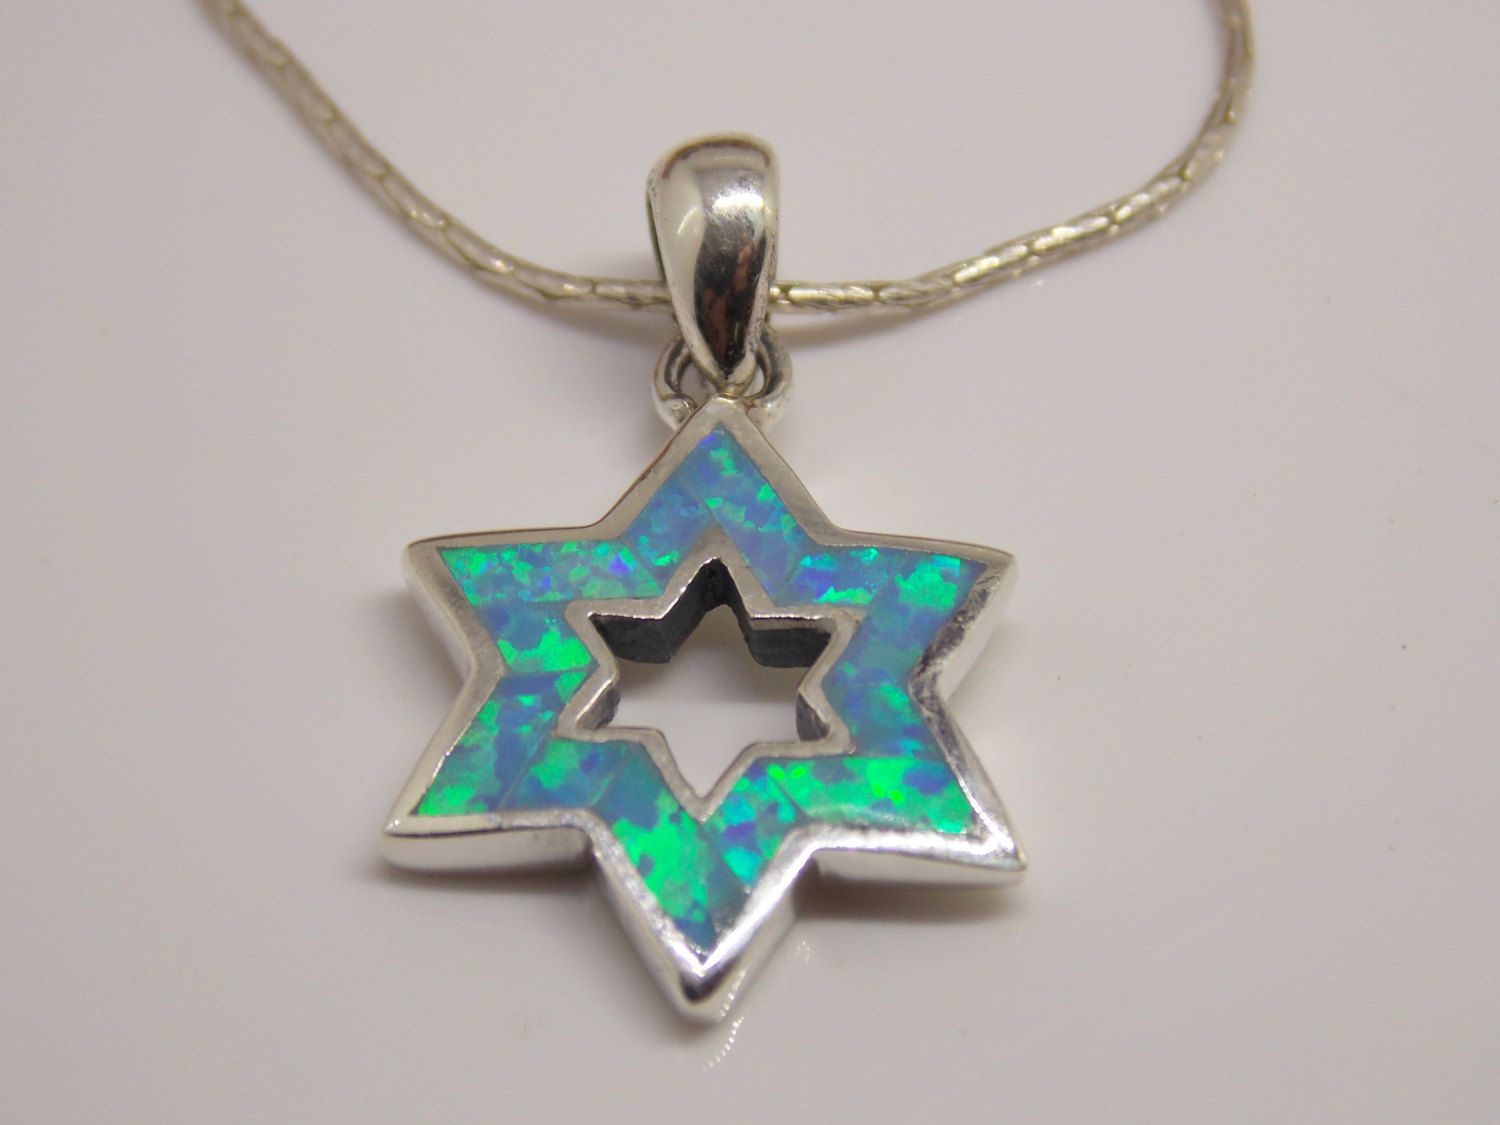 Star of david necklace 925 sterling silver star of david pendant star of david necklace 925 sterling silver star of david pendant blue opal magen david necklace opal star of david opal star necklace aloadofball Image collections